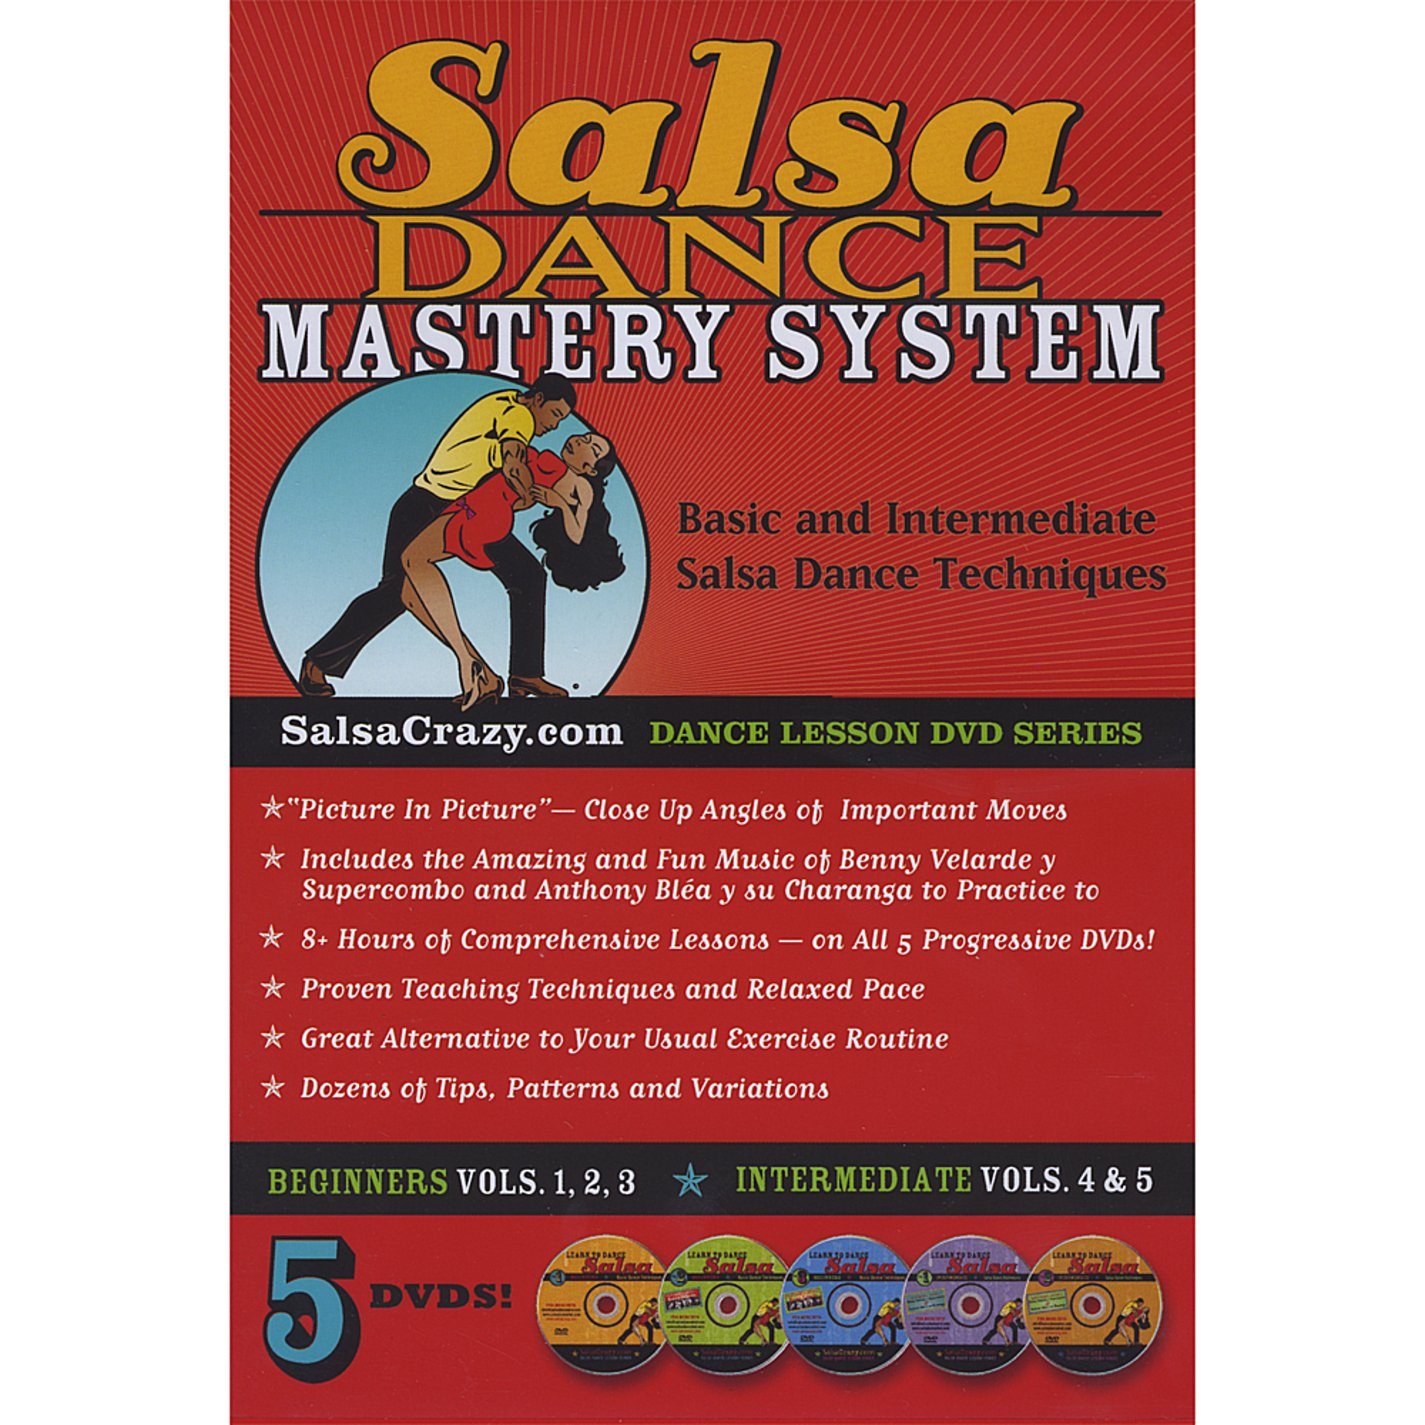 Salsa Dancing Mastery System